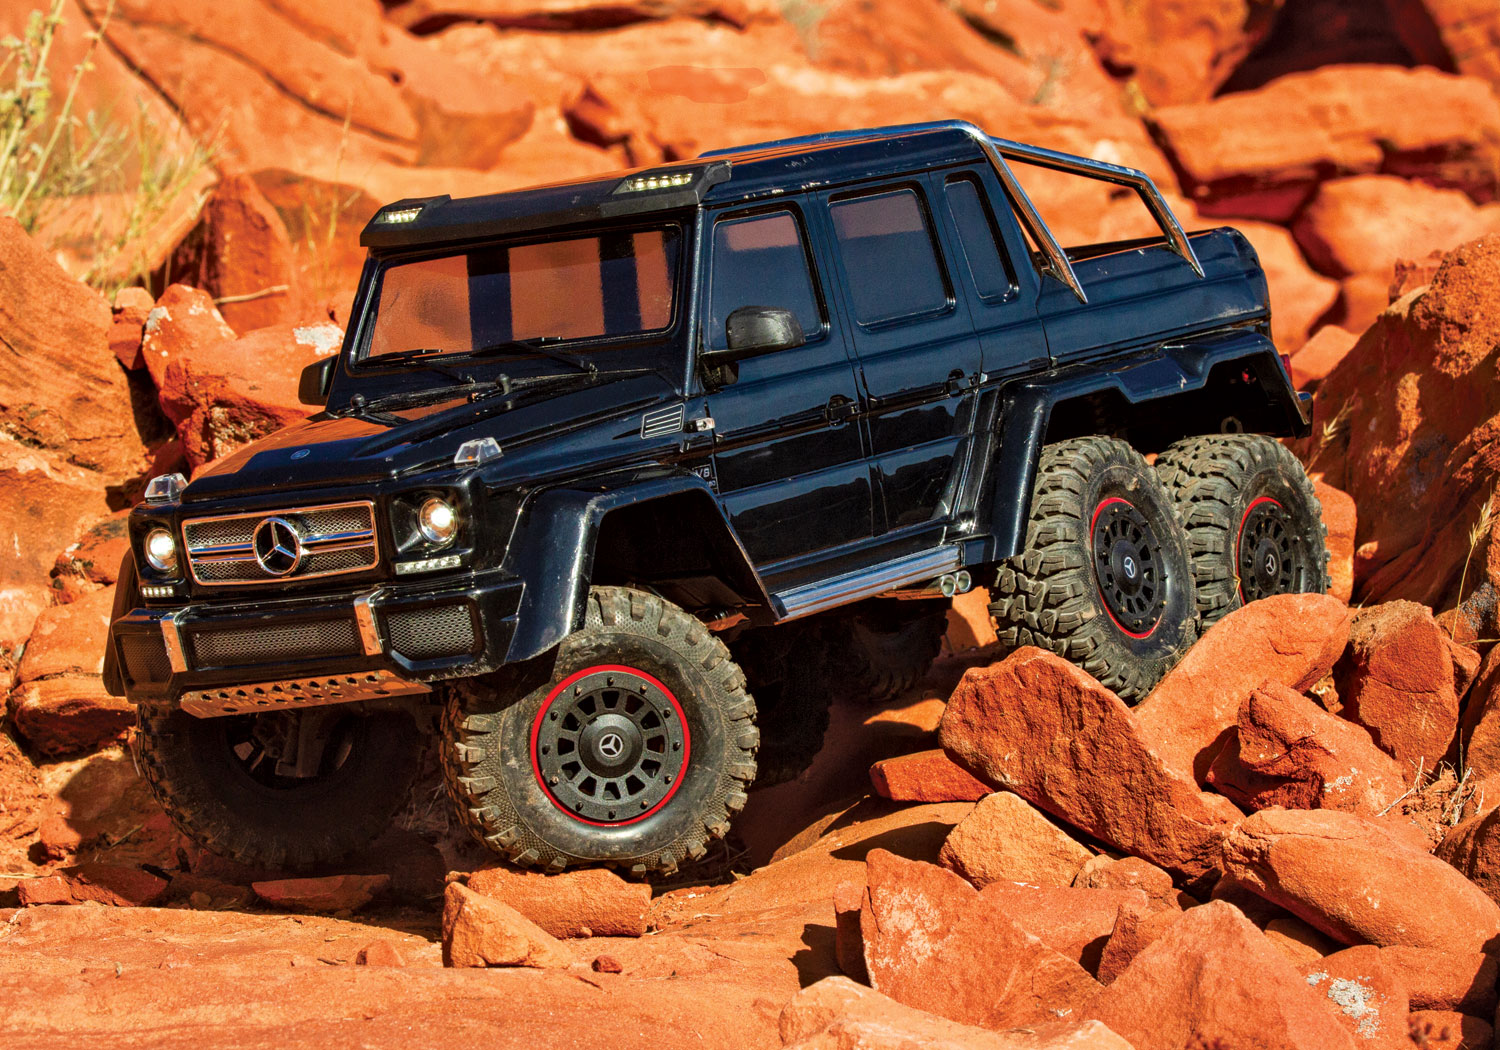 88096-4-TRX4-MB-6x6-Black-Rocks-crawl-left-AH0W3119.jpg